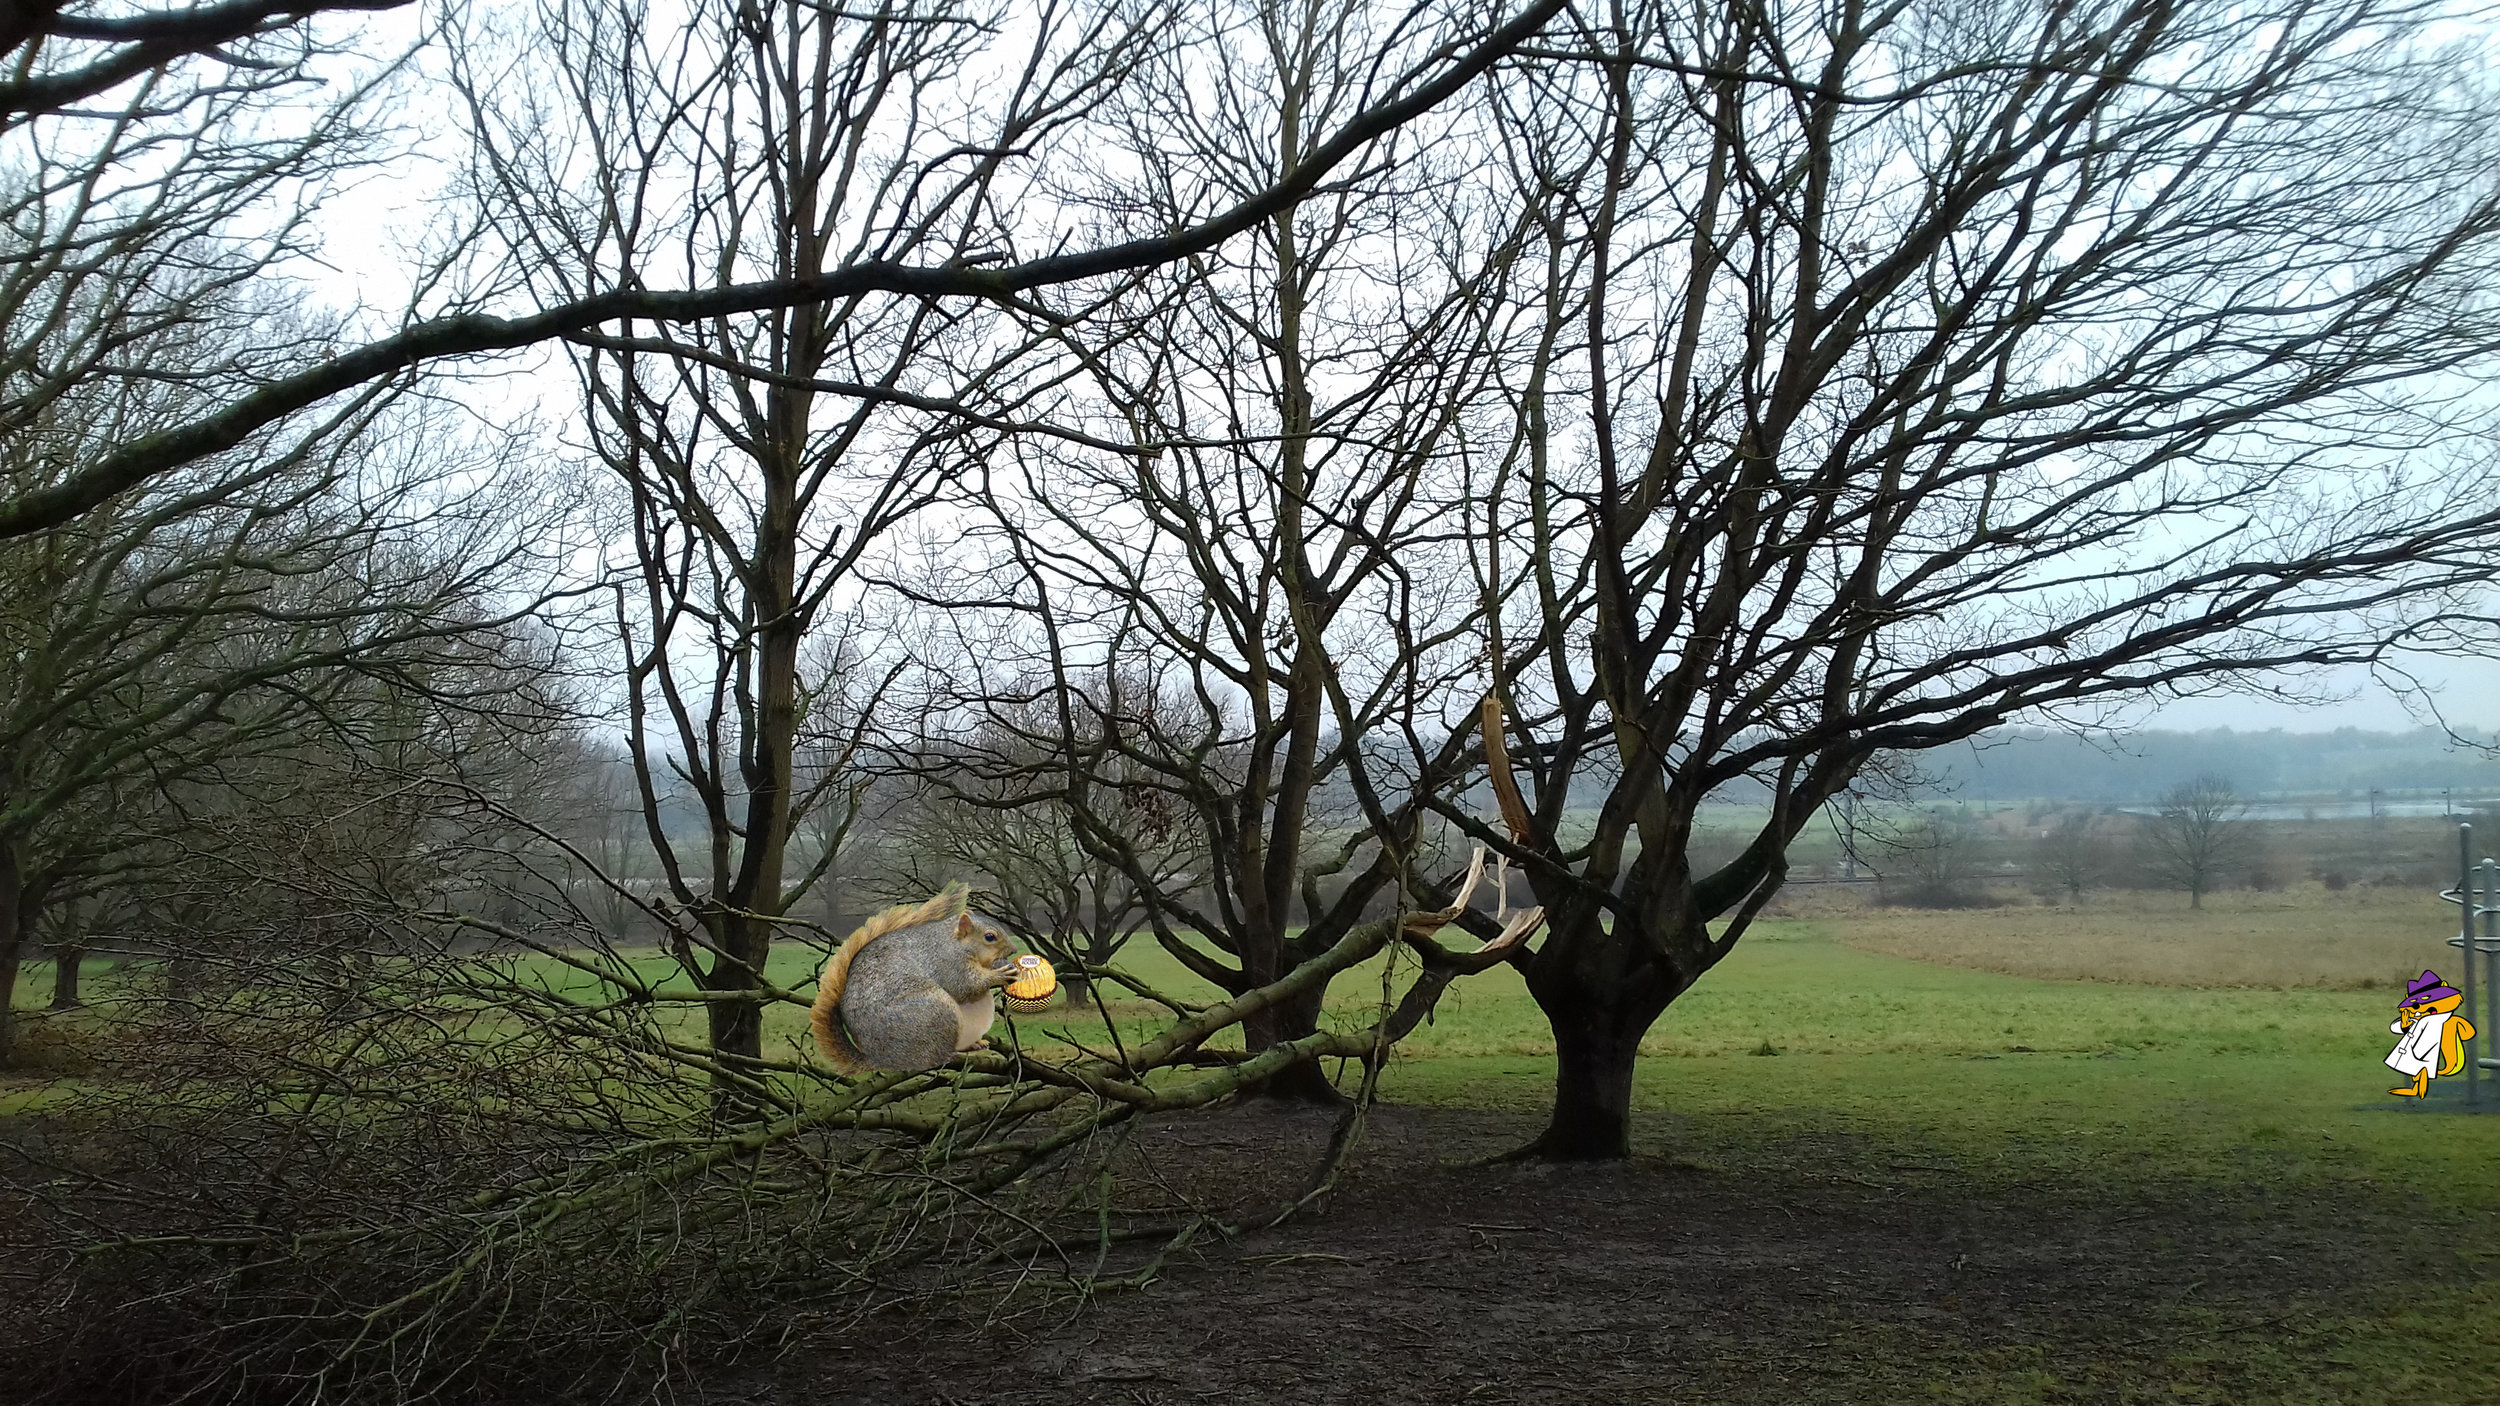 An overweight furry fat face filler destroys yet another tree as it gorges on Ferrero Rocher